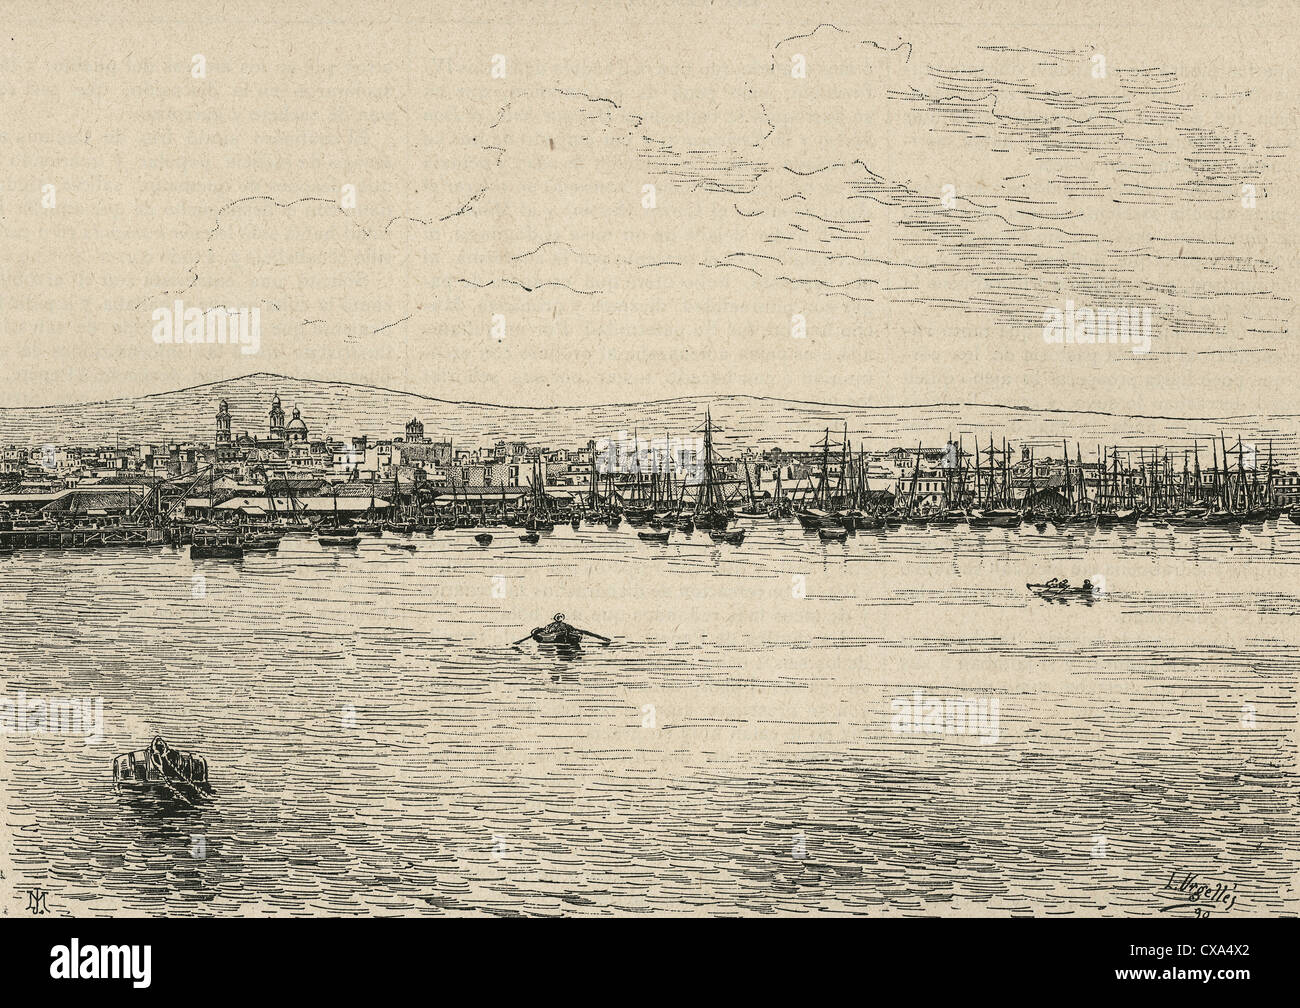 Whalers in action wood engraving published in 1855 stock illustration - Uruguay Montevideo 19th Century City And Harbor Engraved By L Urgelles